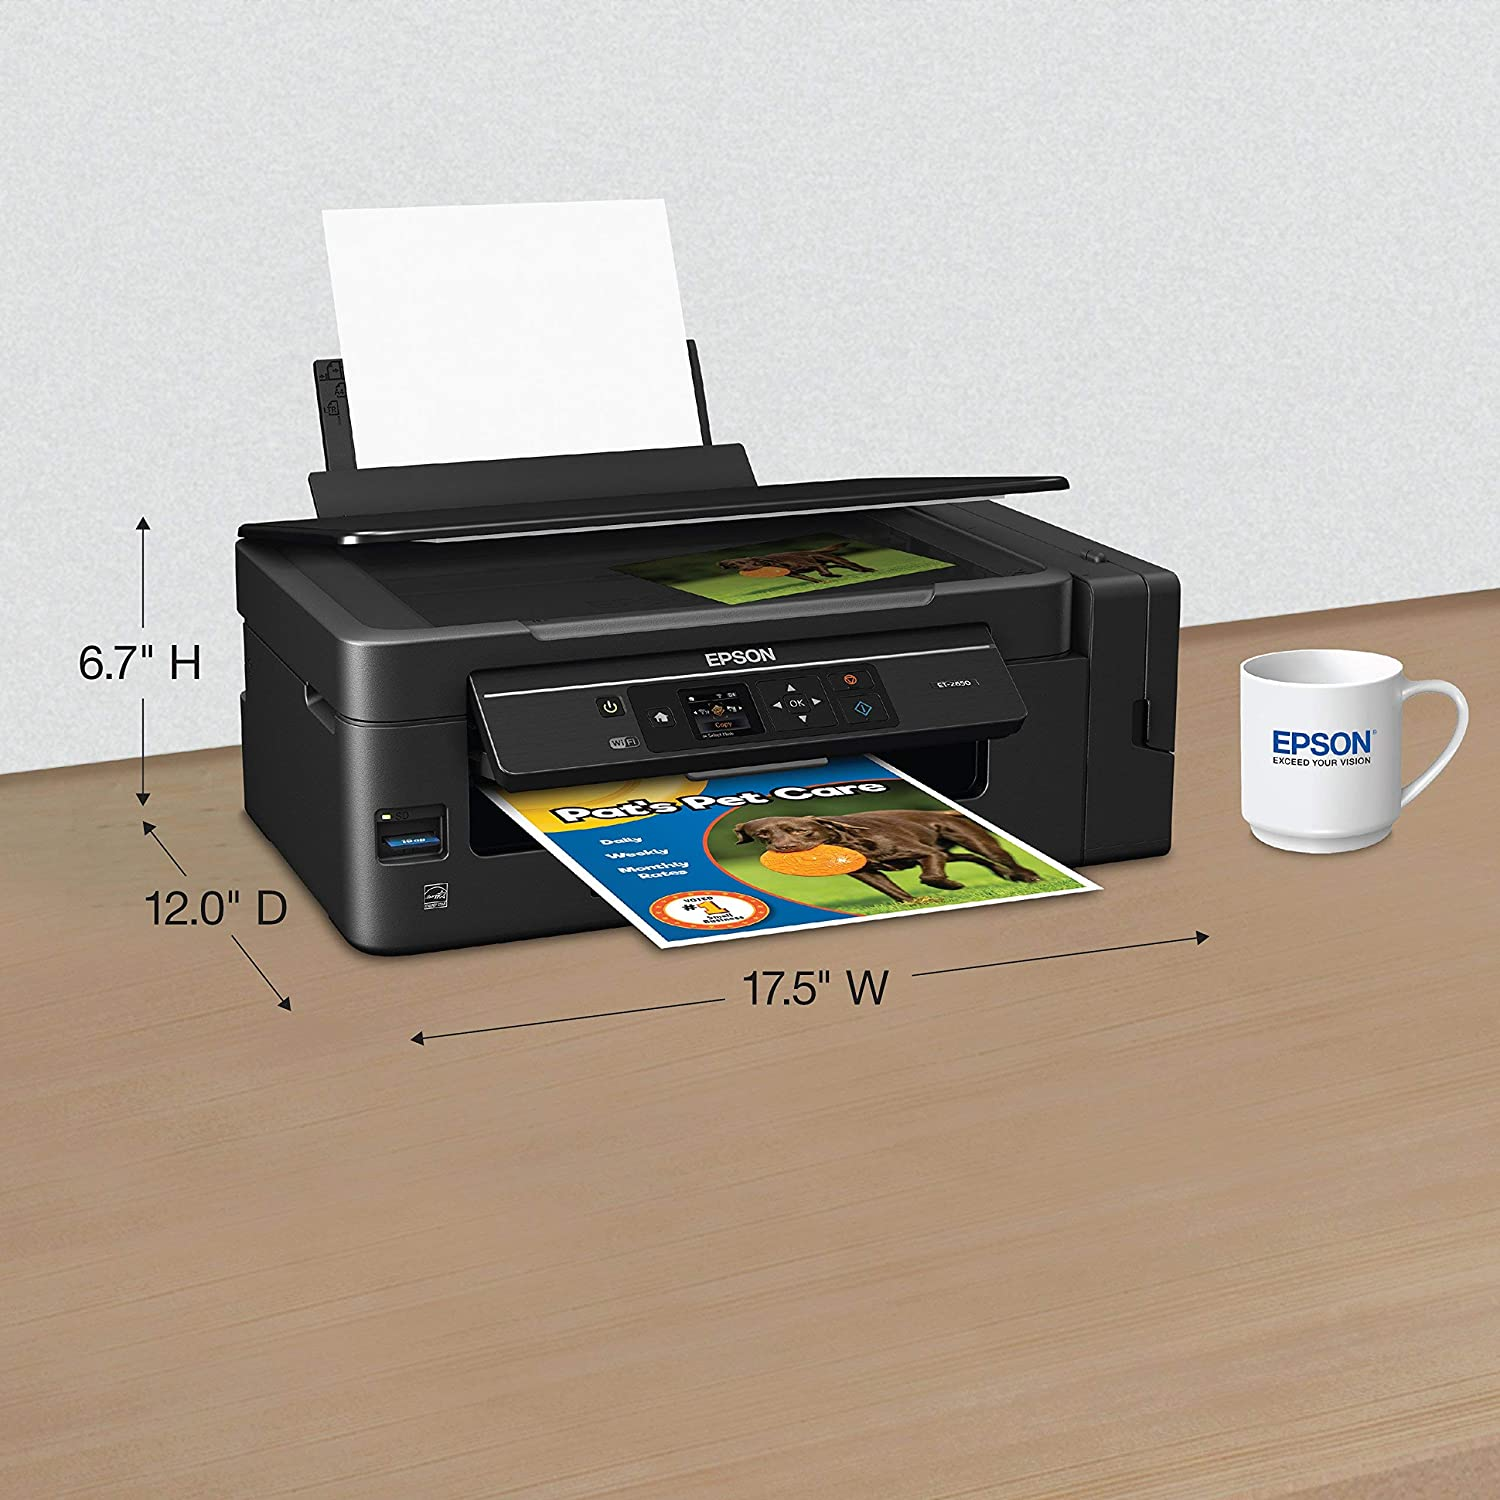 Amazon.com: Epson Expression ET-2650 EcoTank Wireless Color ...